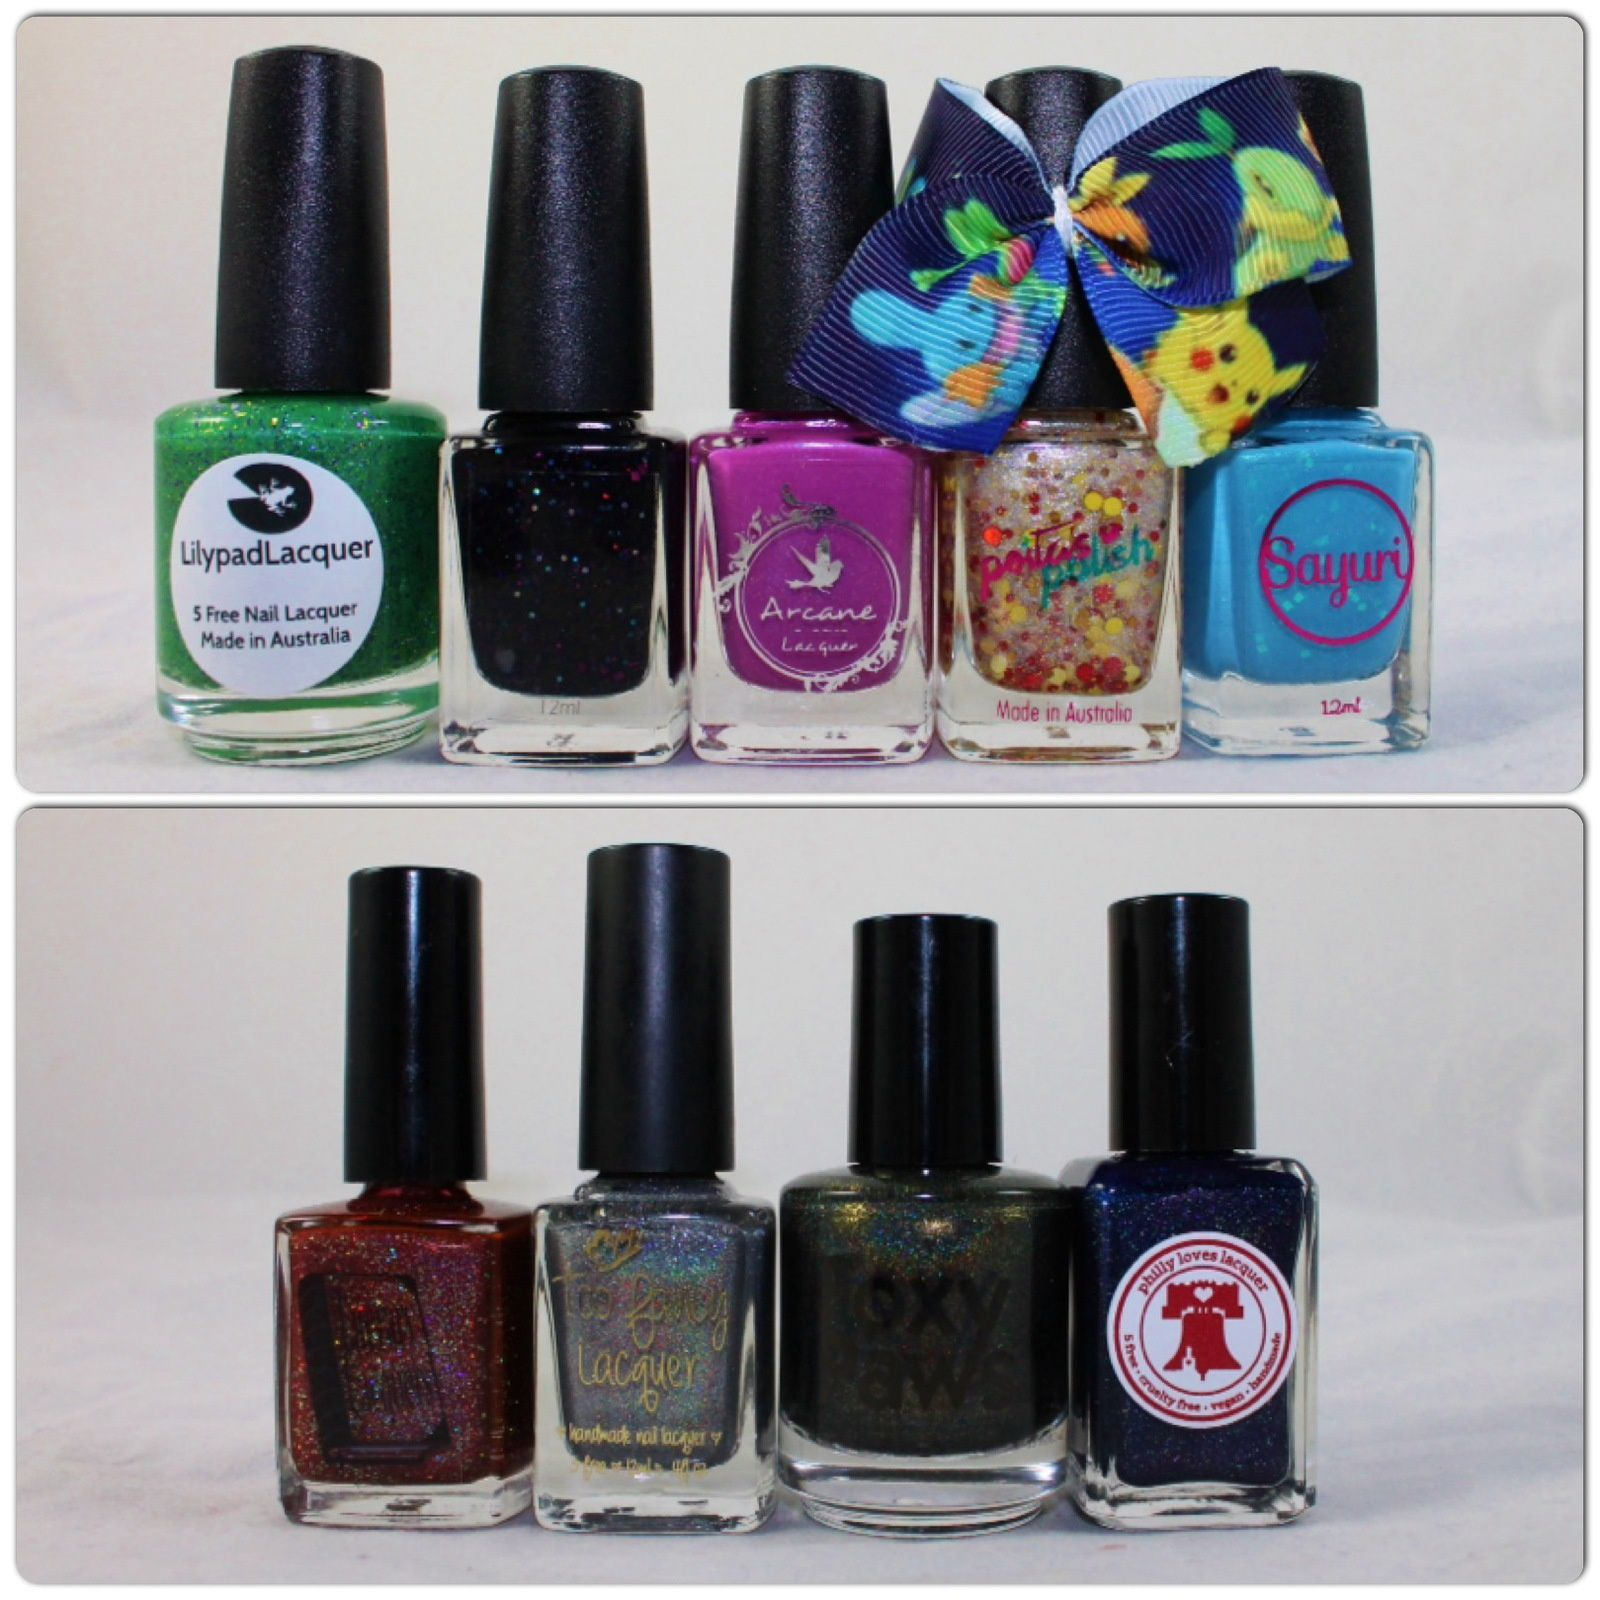 What's Indie Box November 2014, Lilypad Lacquer Tornadus, Bella Belle Nail Couture Vivillon, Arcane Lacquer Glooms Vileplume, Peita's Polish Pikachu, Sayuri #134), Dazzled Holograil October 2014 (Literary Lacquer The Blood is the Life, Too Fancy Lacquer Don't Drink The Water, Foxy Paws Gimme Soul, Philly Loves Lacquer Come Play With Us Danny)